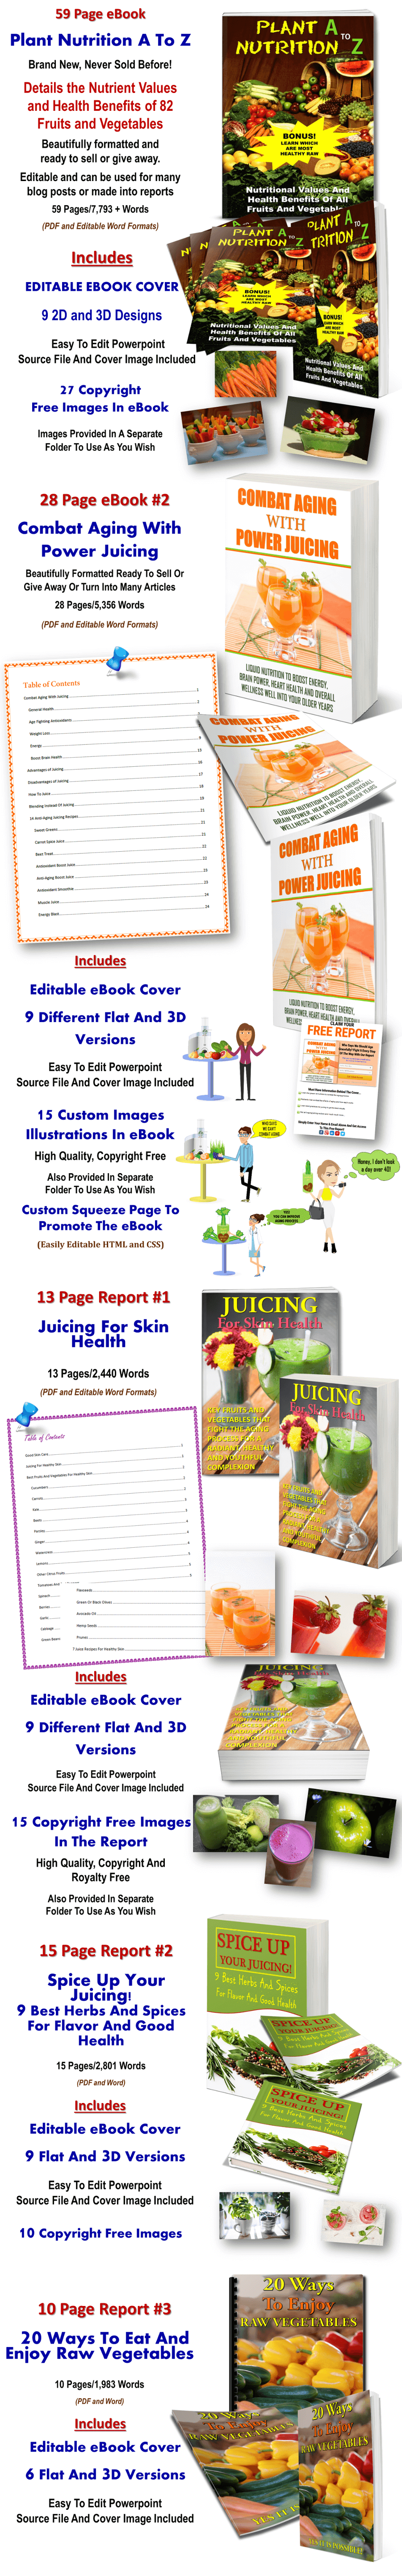 Juicing And Raw Food PLR